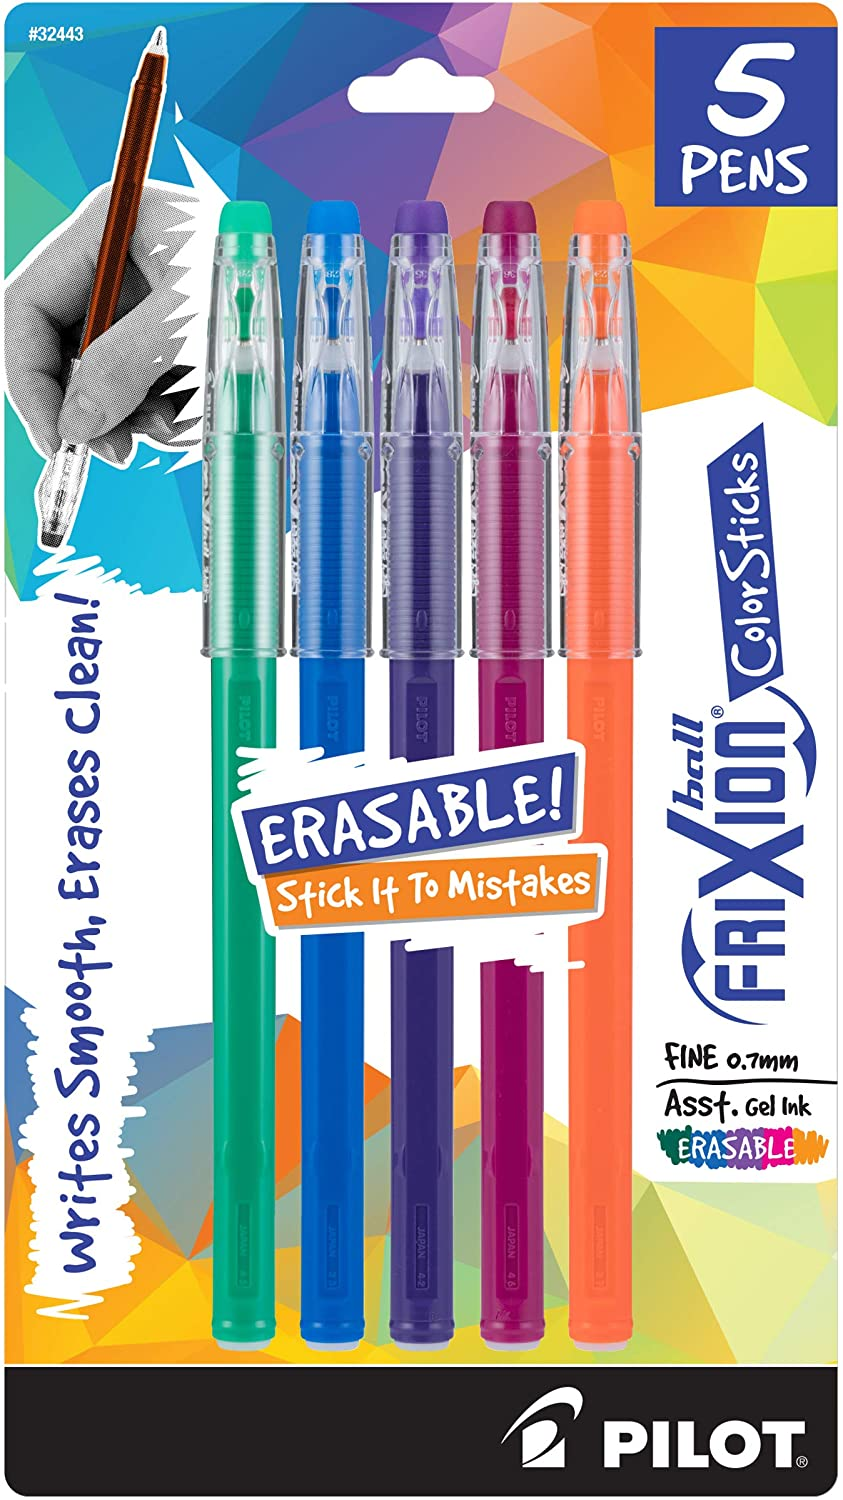 PILOT FriXion ColorSticks Erasable Gel Ink Stick Pens, Fine Point, Kelly Green/Blue/Purple/Magenta/Salmon Pink Inks, 5-Pack (32443)